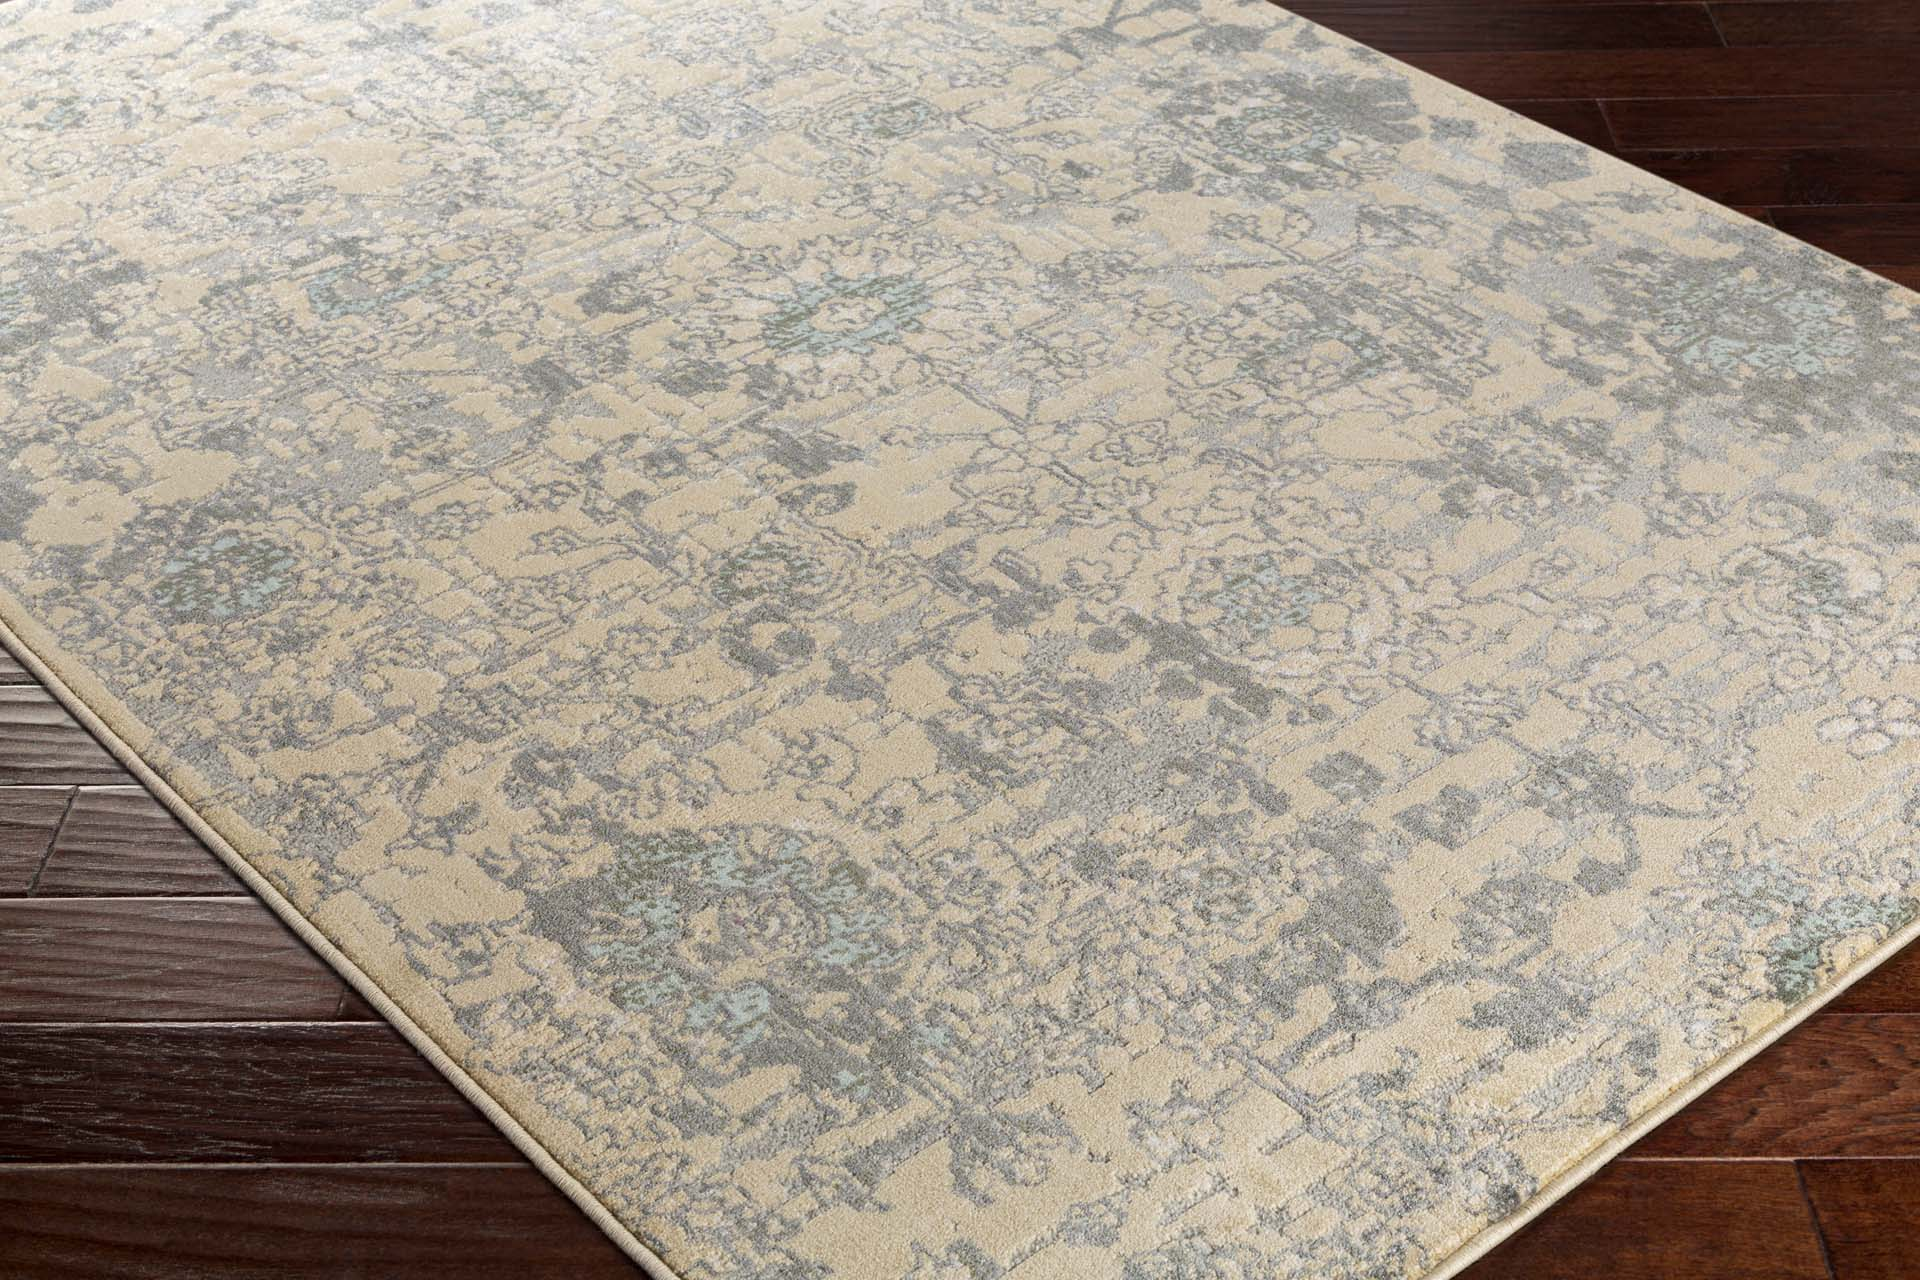 Surya Serene Sre 1008 Area Rug The Dump Luxe Furniture